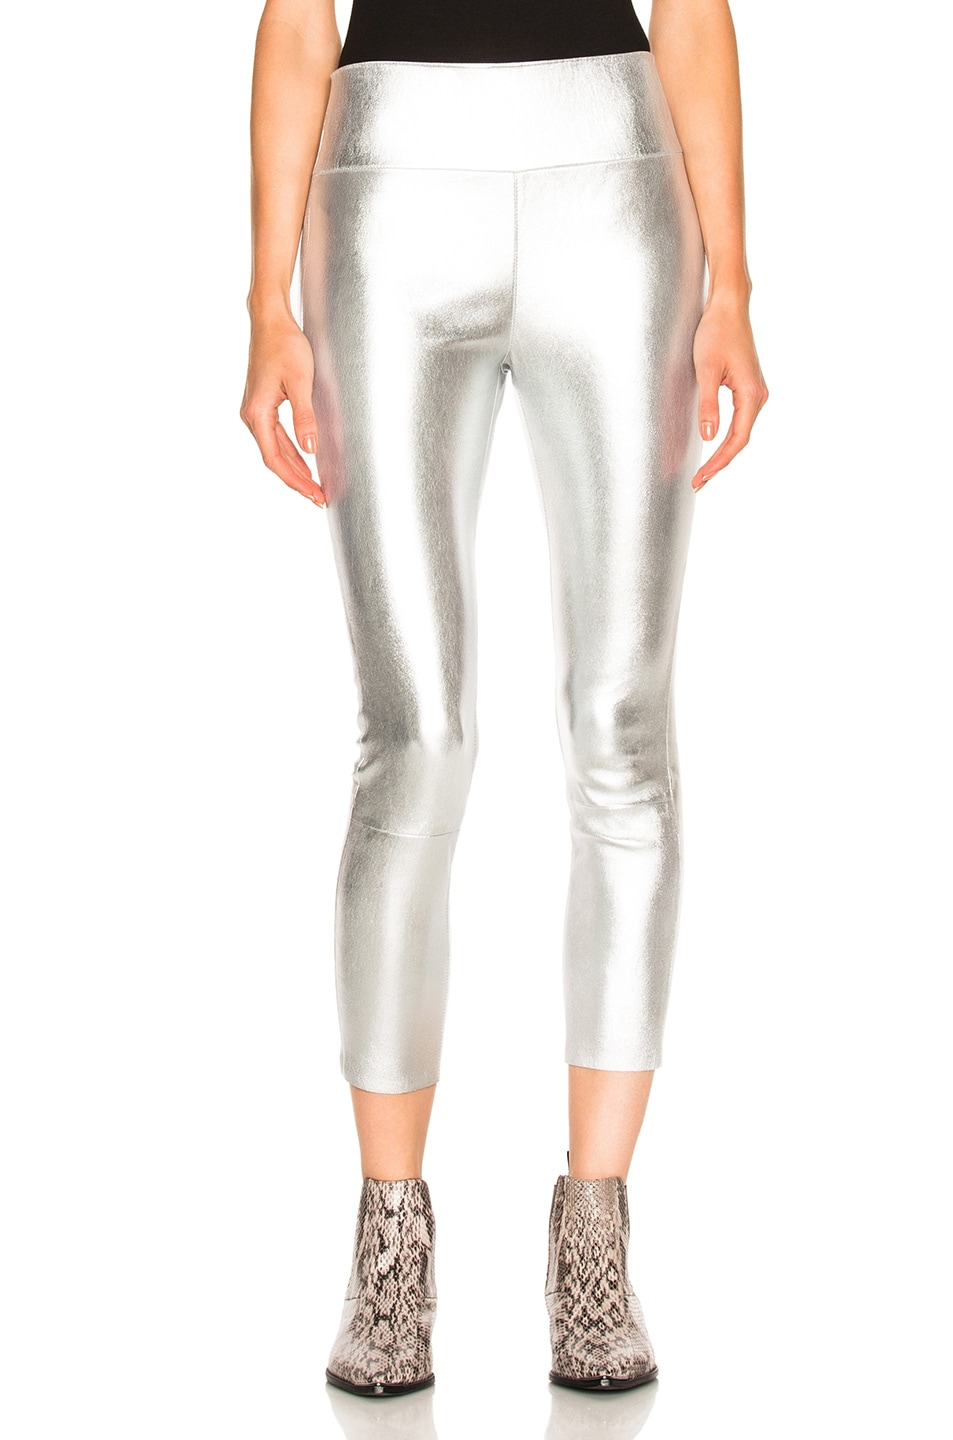 Silver Leather high waisted leggings SPRWMN Buy Sale 100% Authentic Discount Best Choice For Sale XZ5jiIG8